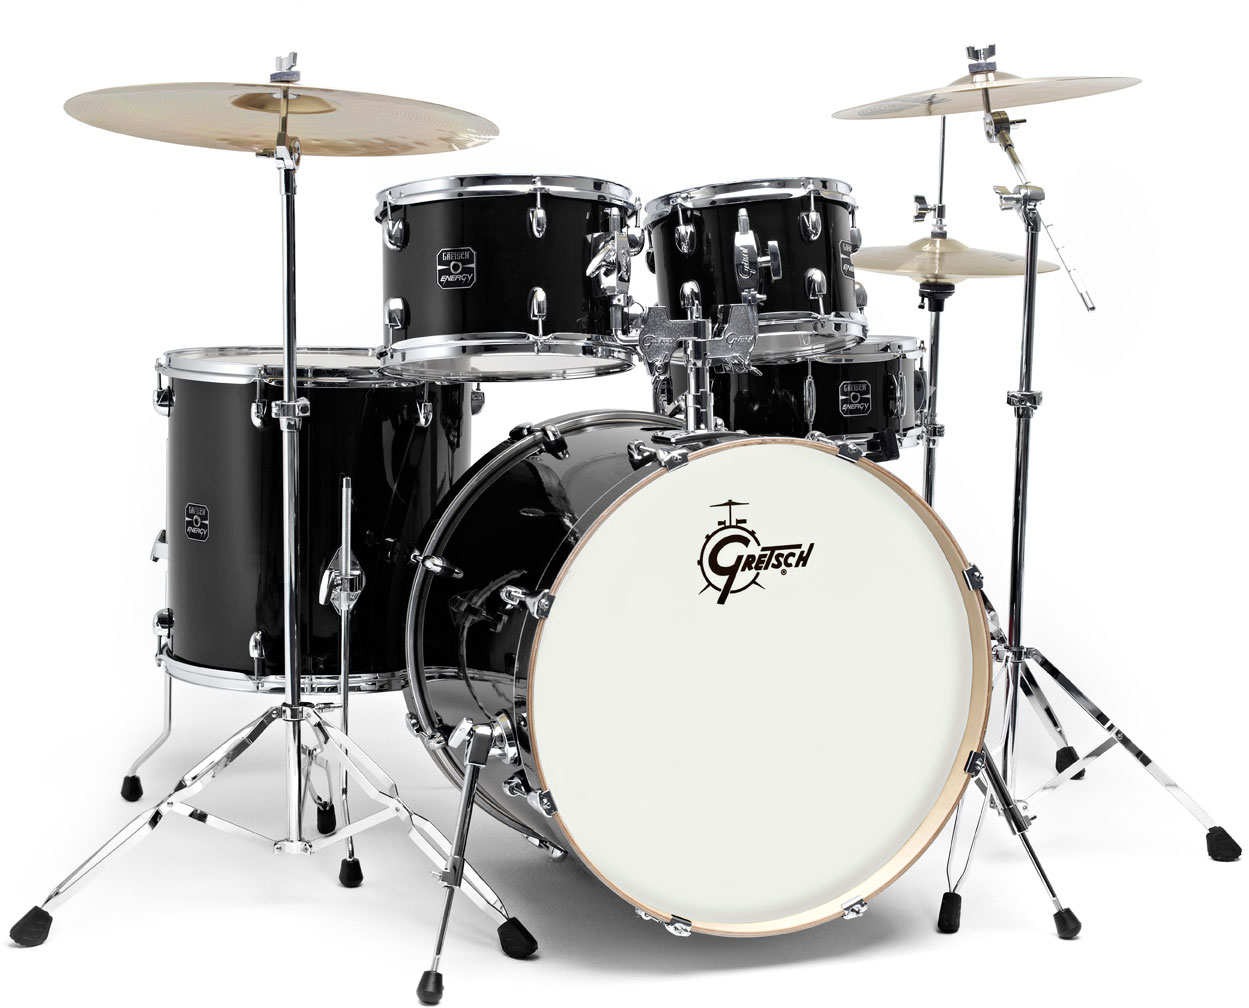 gretsch-drums-ge2-e825tk-energy-kit-black-barry-casson-drum-instructor-victoria-bc-canada